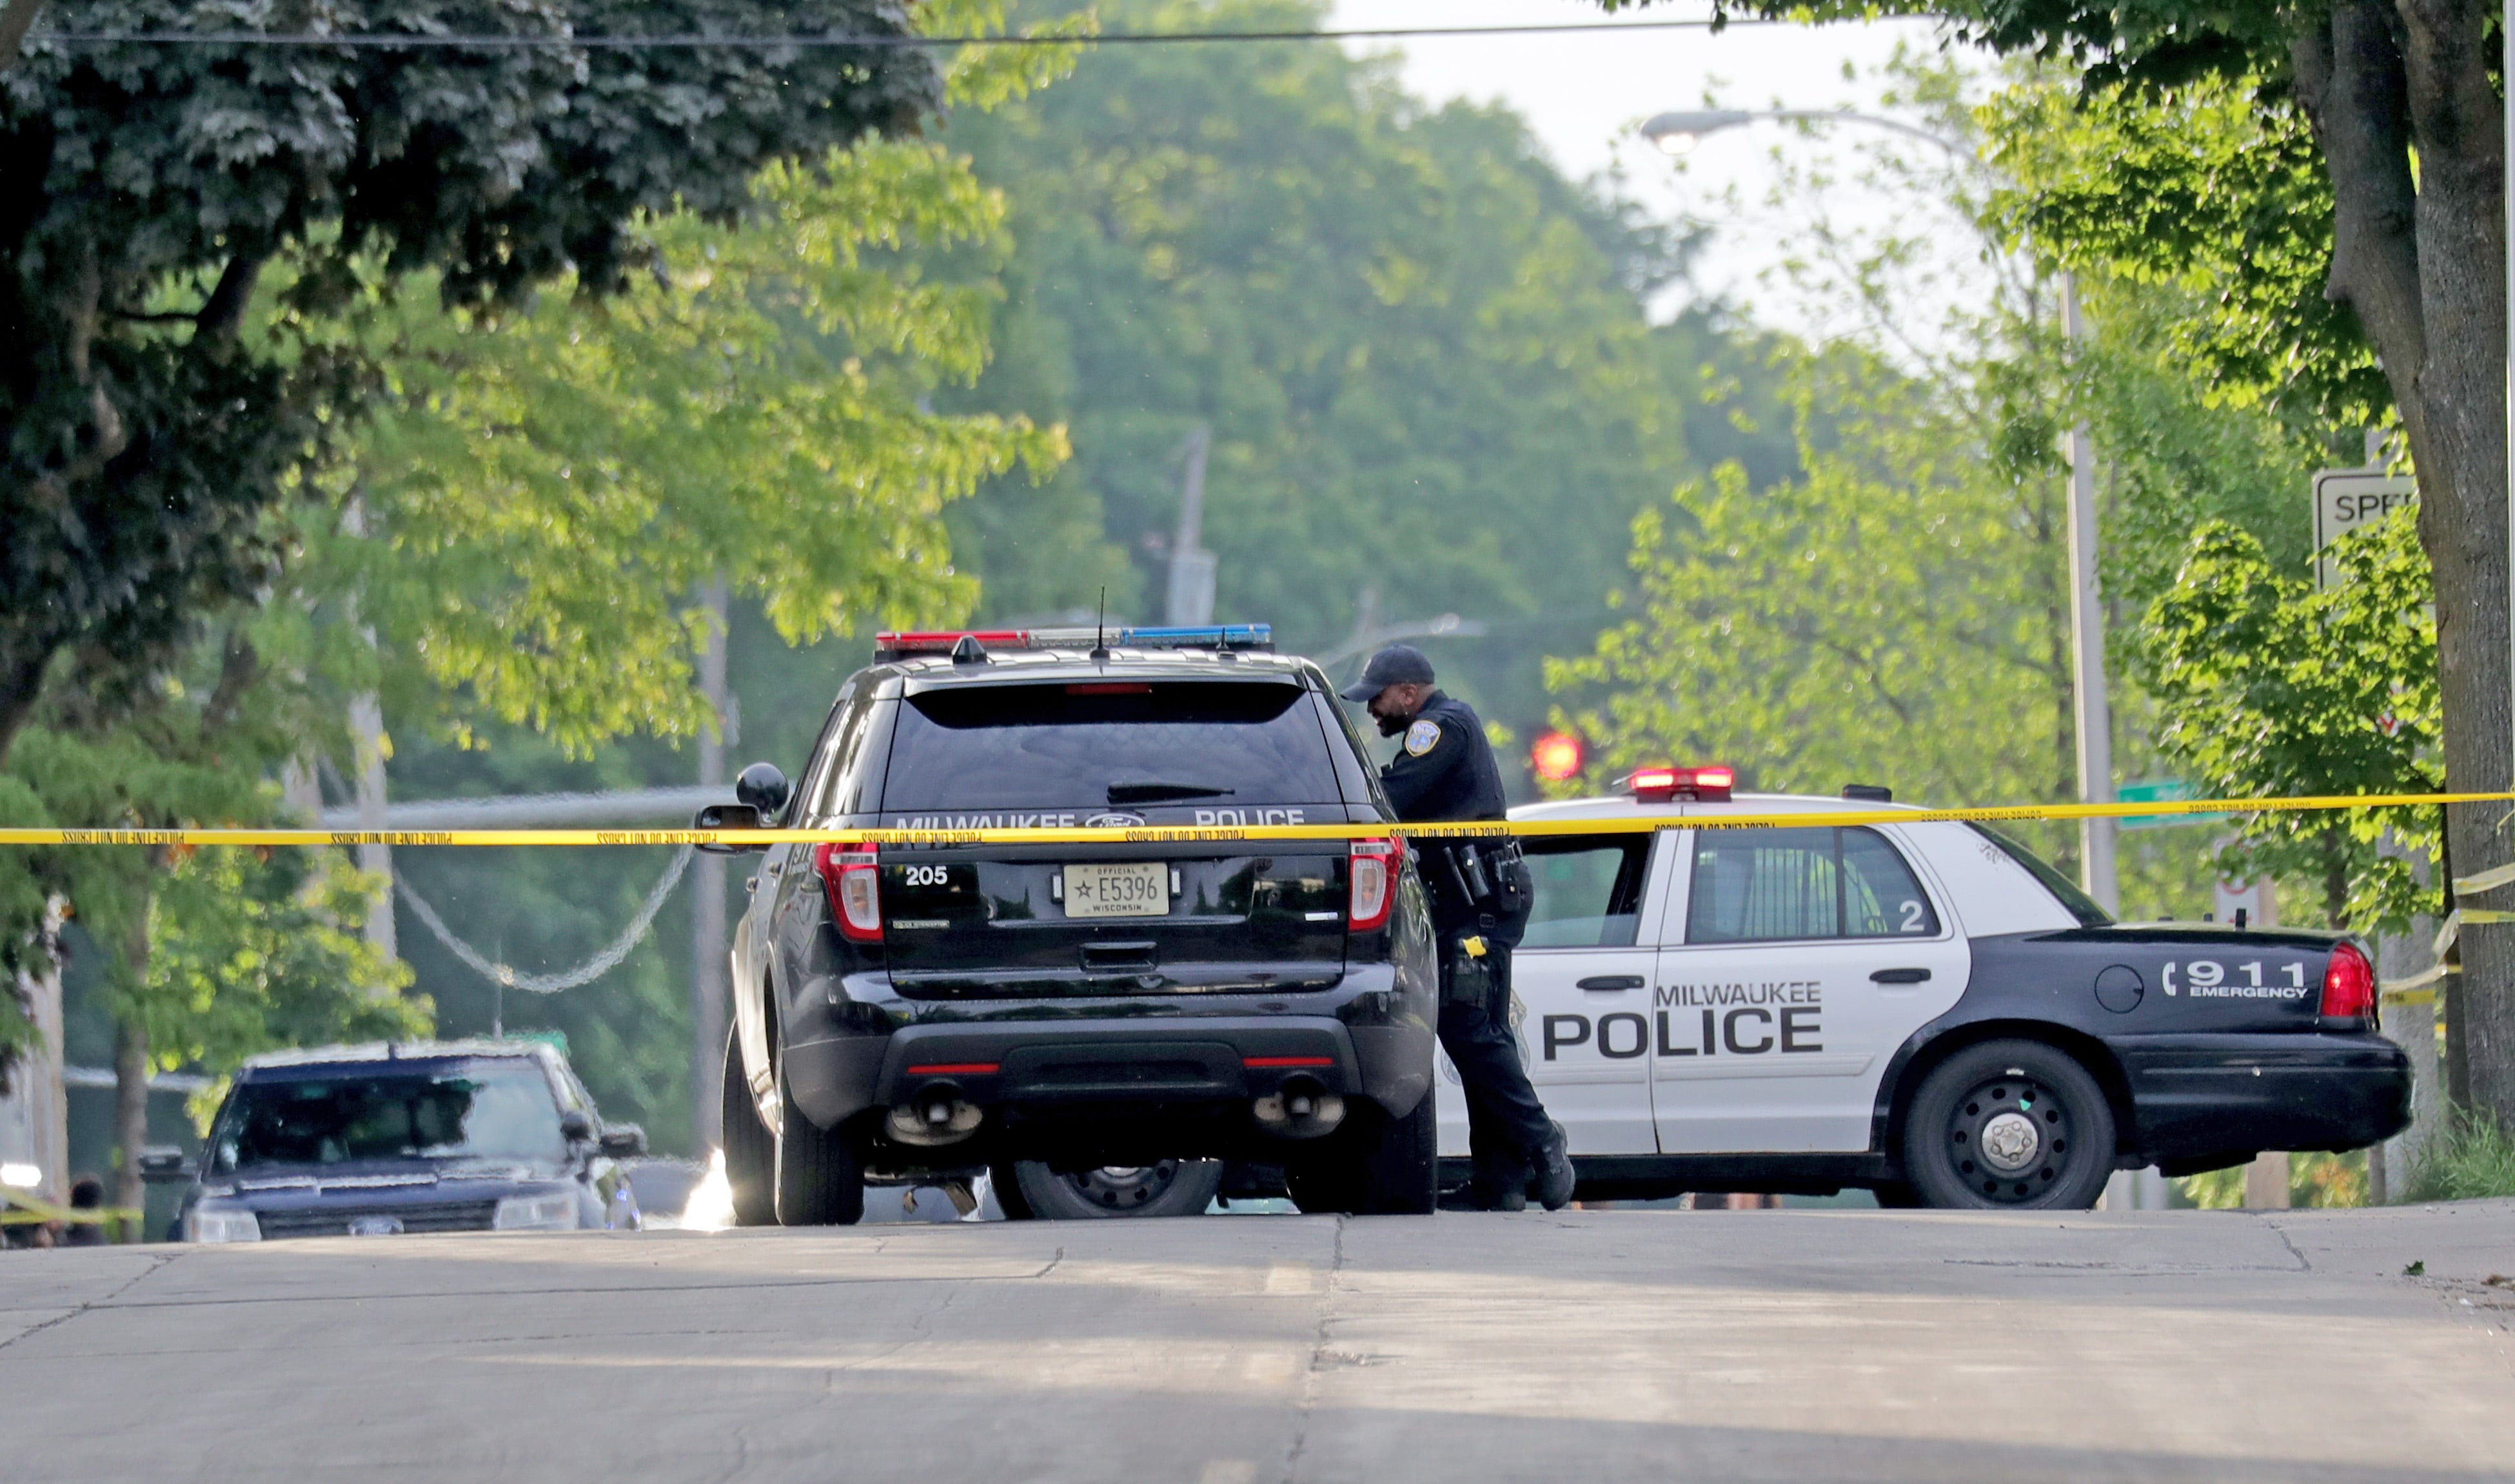 Raw video: Police at the scene after a fatal officer-involved shooting